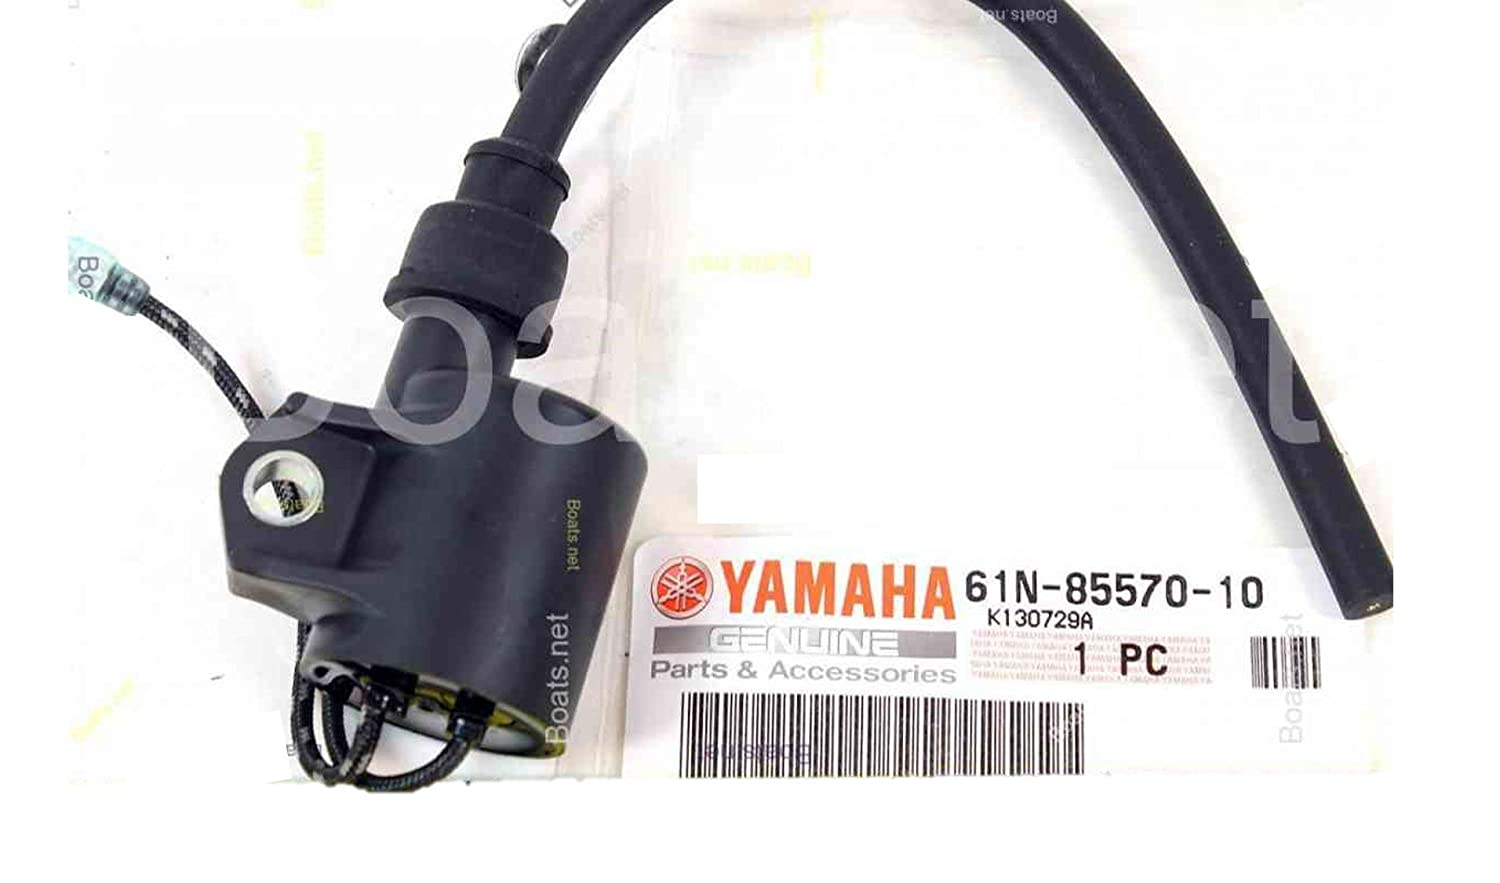 Yamaha 61N-85570-00-00 Ignition Coil Assembly; New # 61N-85570-10-00 Made by Yamaha